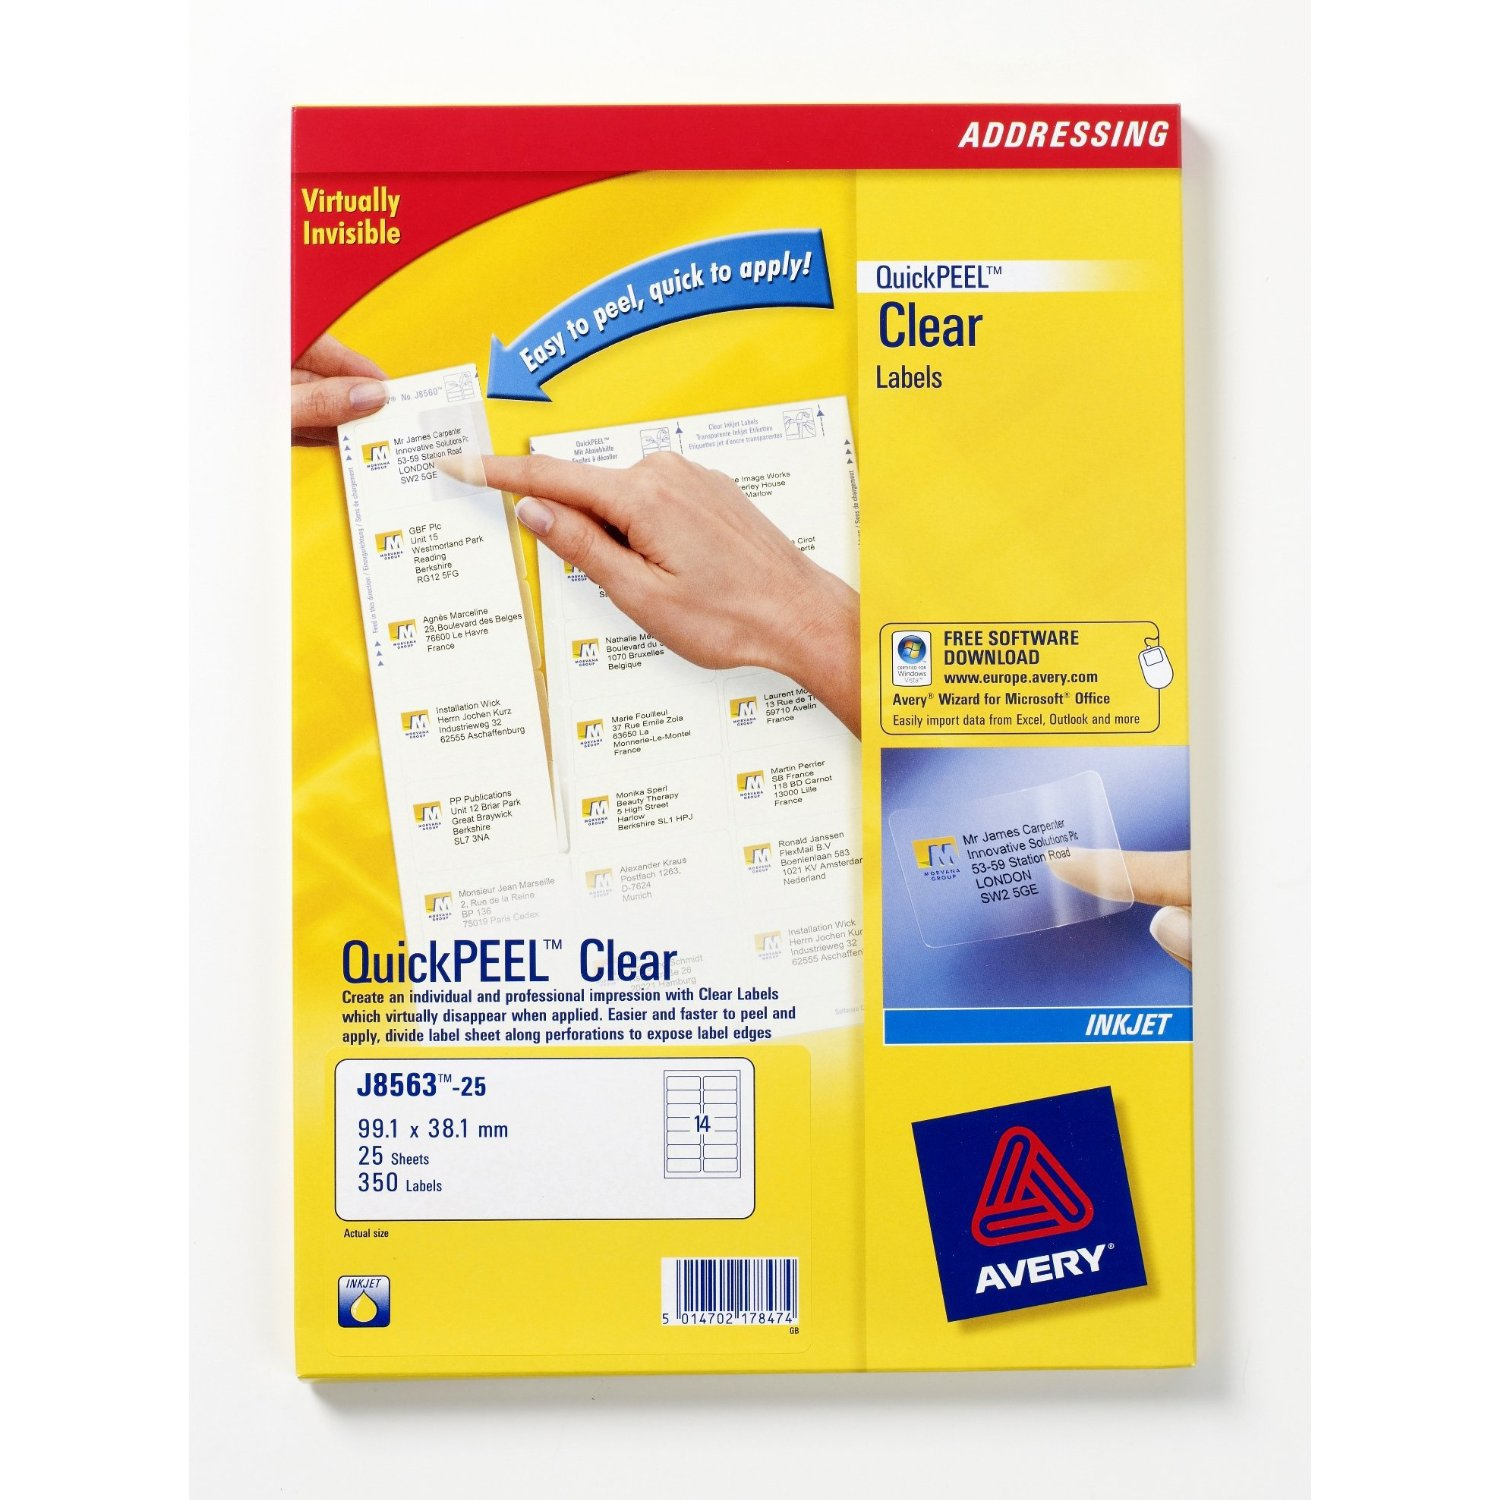 J8563-25 avery Avery Clear Inkjet Labels 99x67.7mm J8565-25 (200 Labels) - AD01